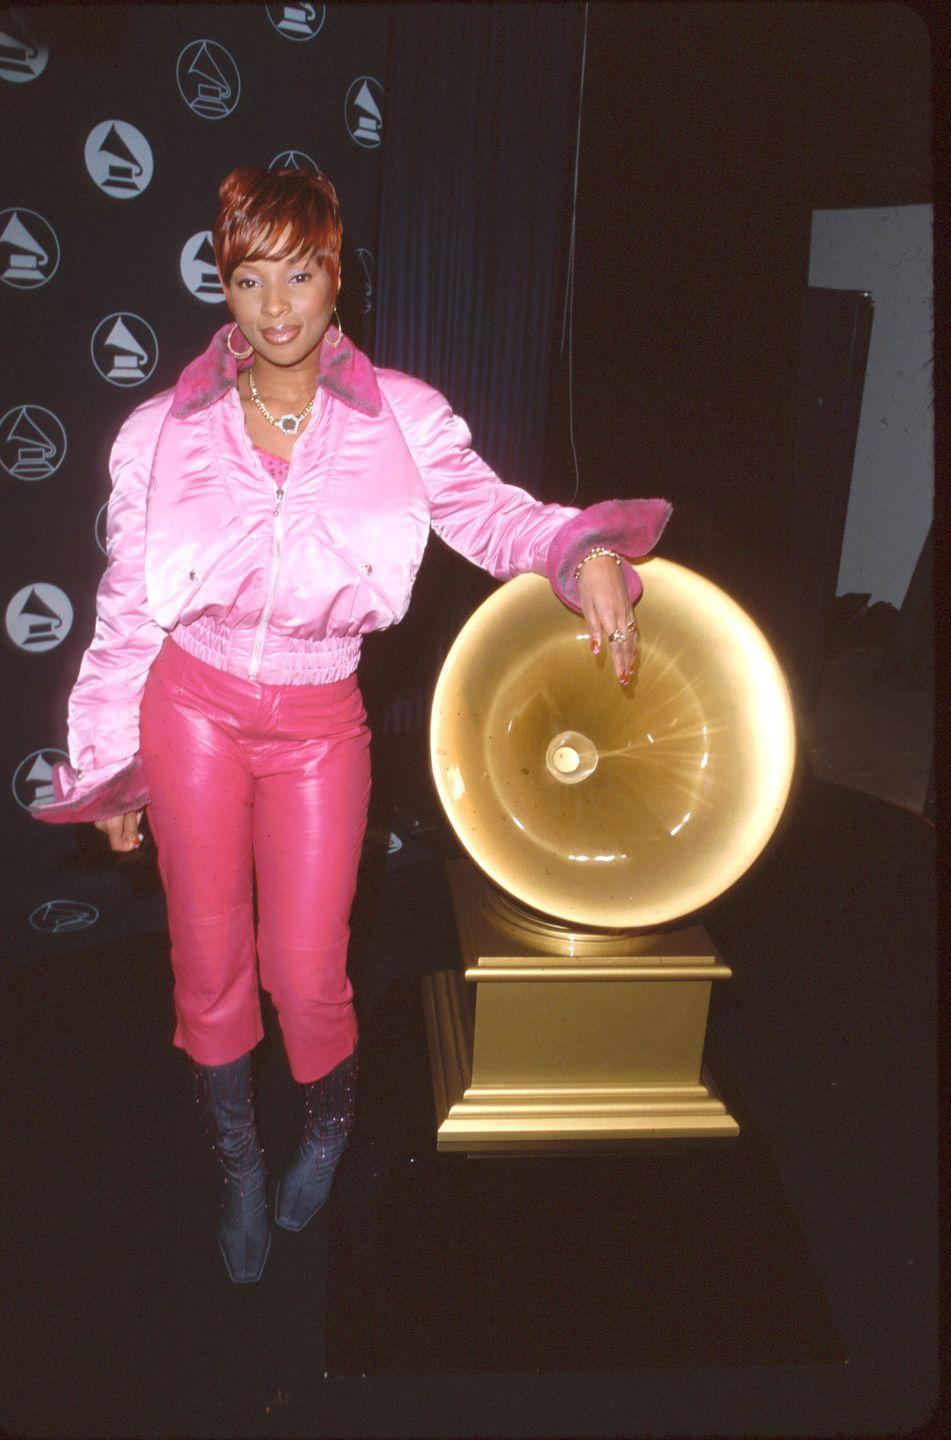 <p>Was this taken at the Grammys or Barbie's Malibu Dream House?! Mary J. Blige showed up to the 2000 Grammys rocking a pink puffer coat and pink leather pants. Ken, wya?</p>